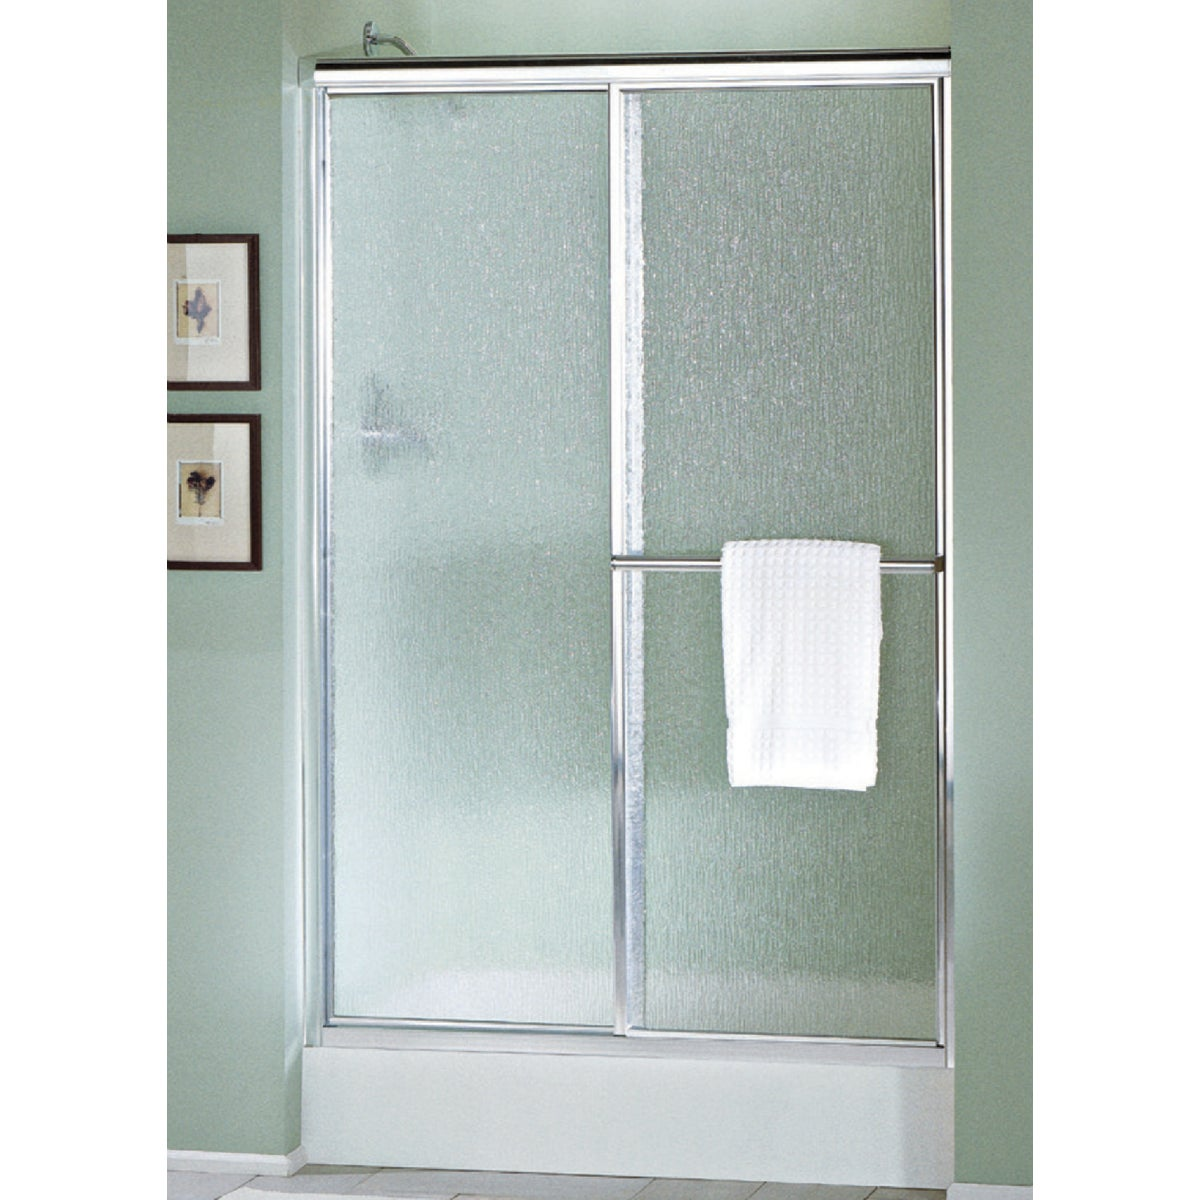 NICKEL/RAIN SHOWER DOOR - 5975-48N-G06 by Sterling Doors